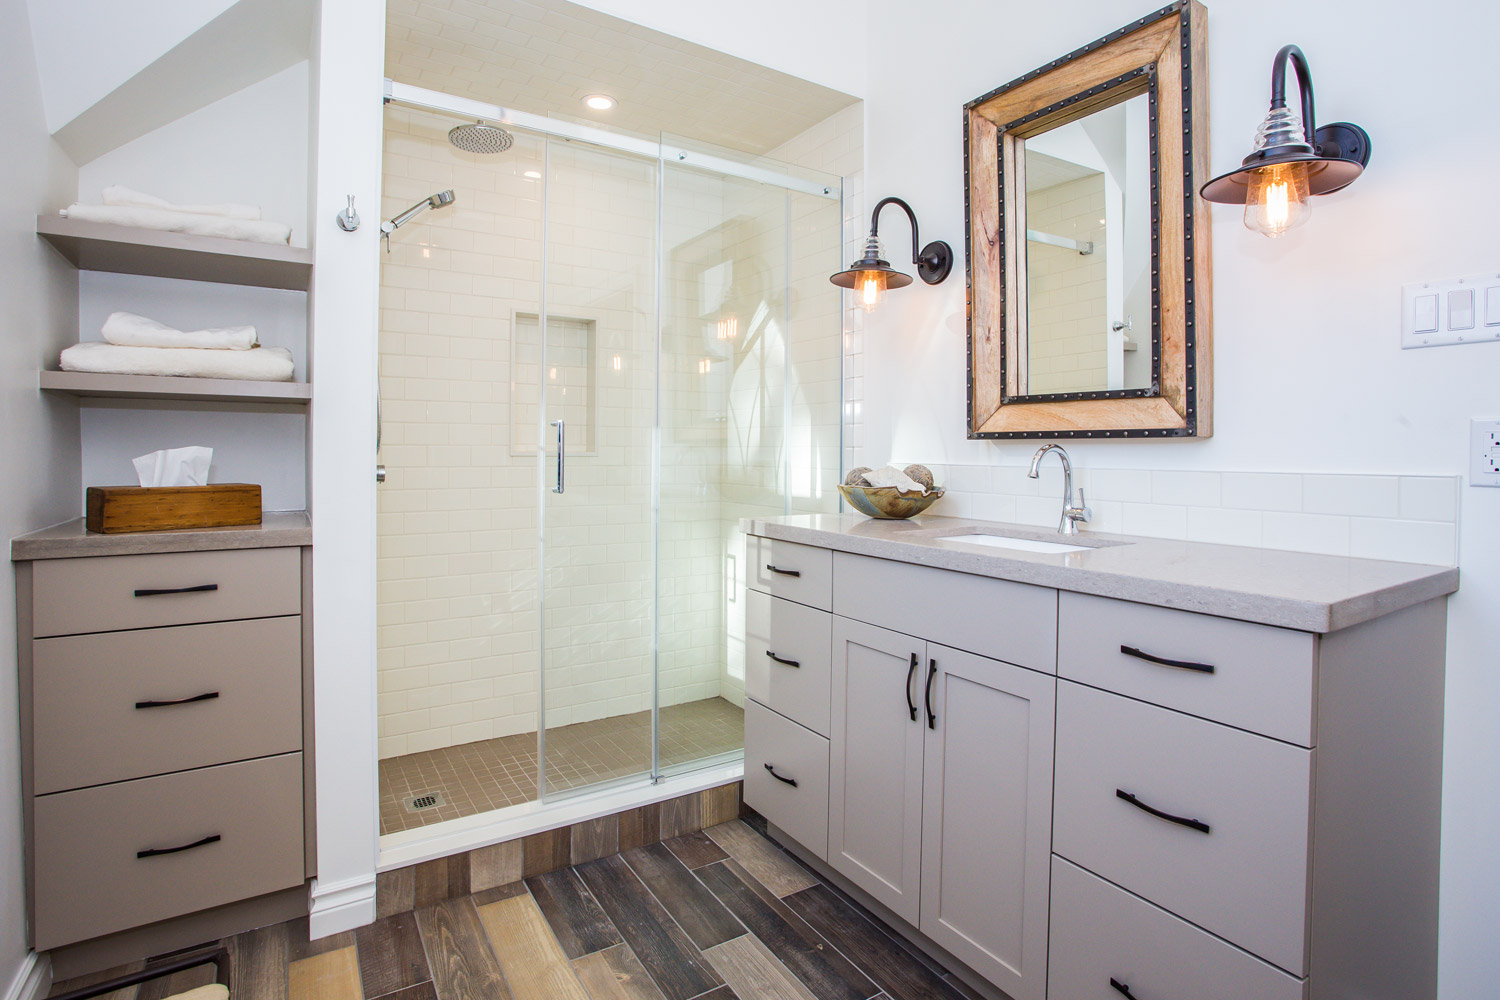 Modern Farmhouse Bathroom Design And Renovation   Total Living Concepts  Barrie Ontario